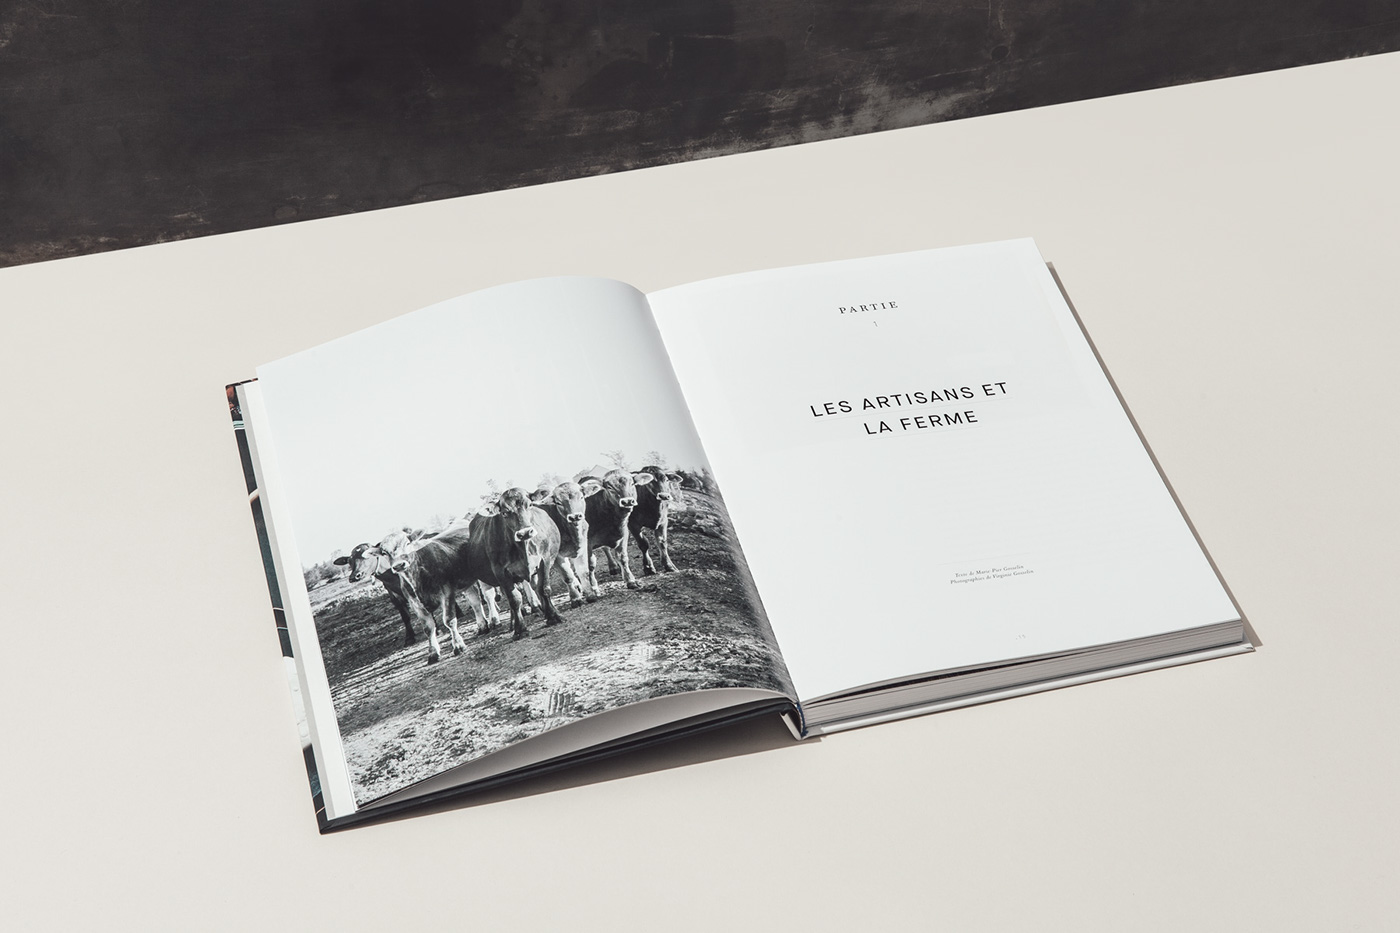 cookbook,Cheese,cow,culinaire,livre,chef,Food ,styling ,Culinary,book,agriculture,restaurant,portrait